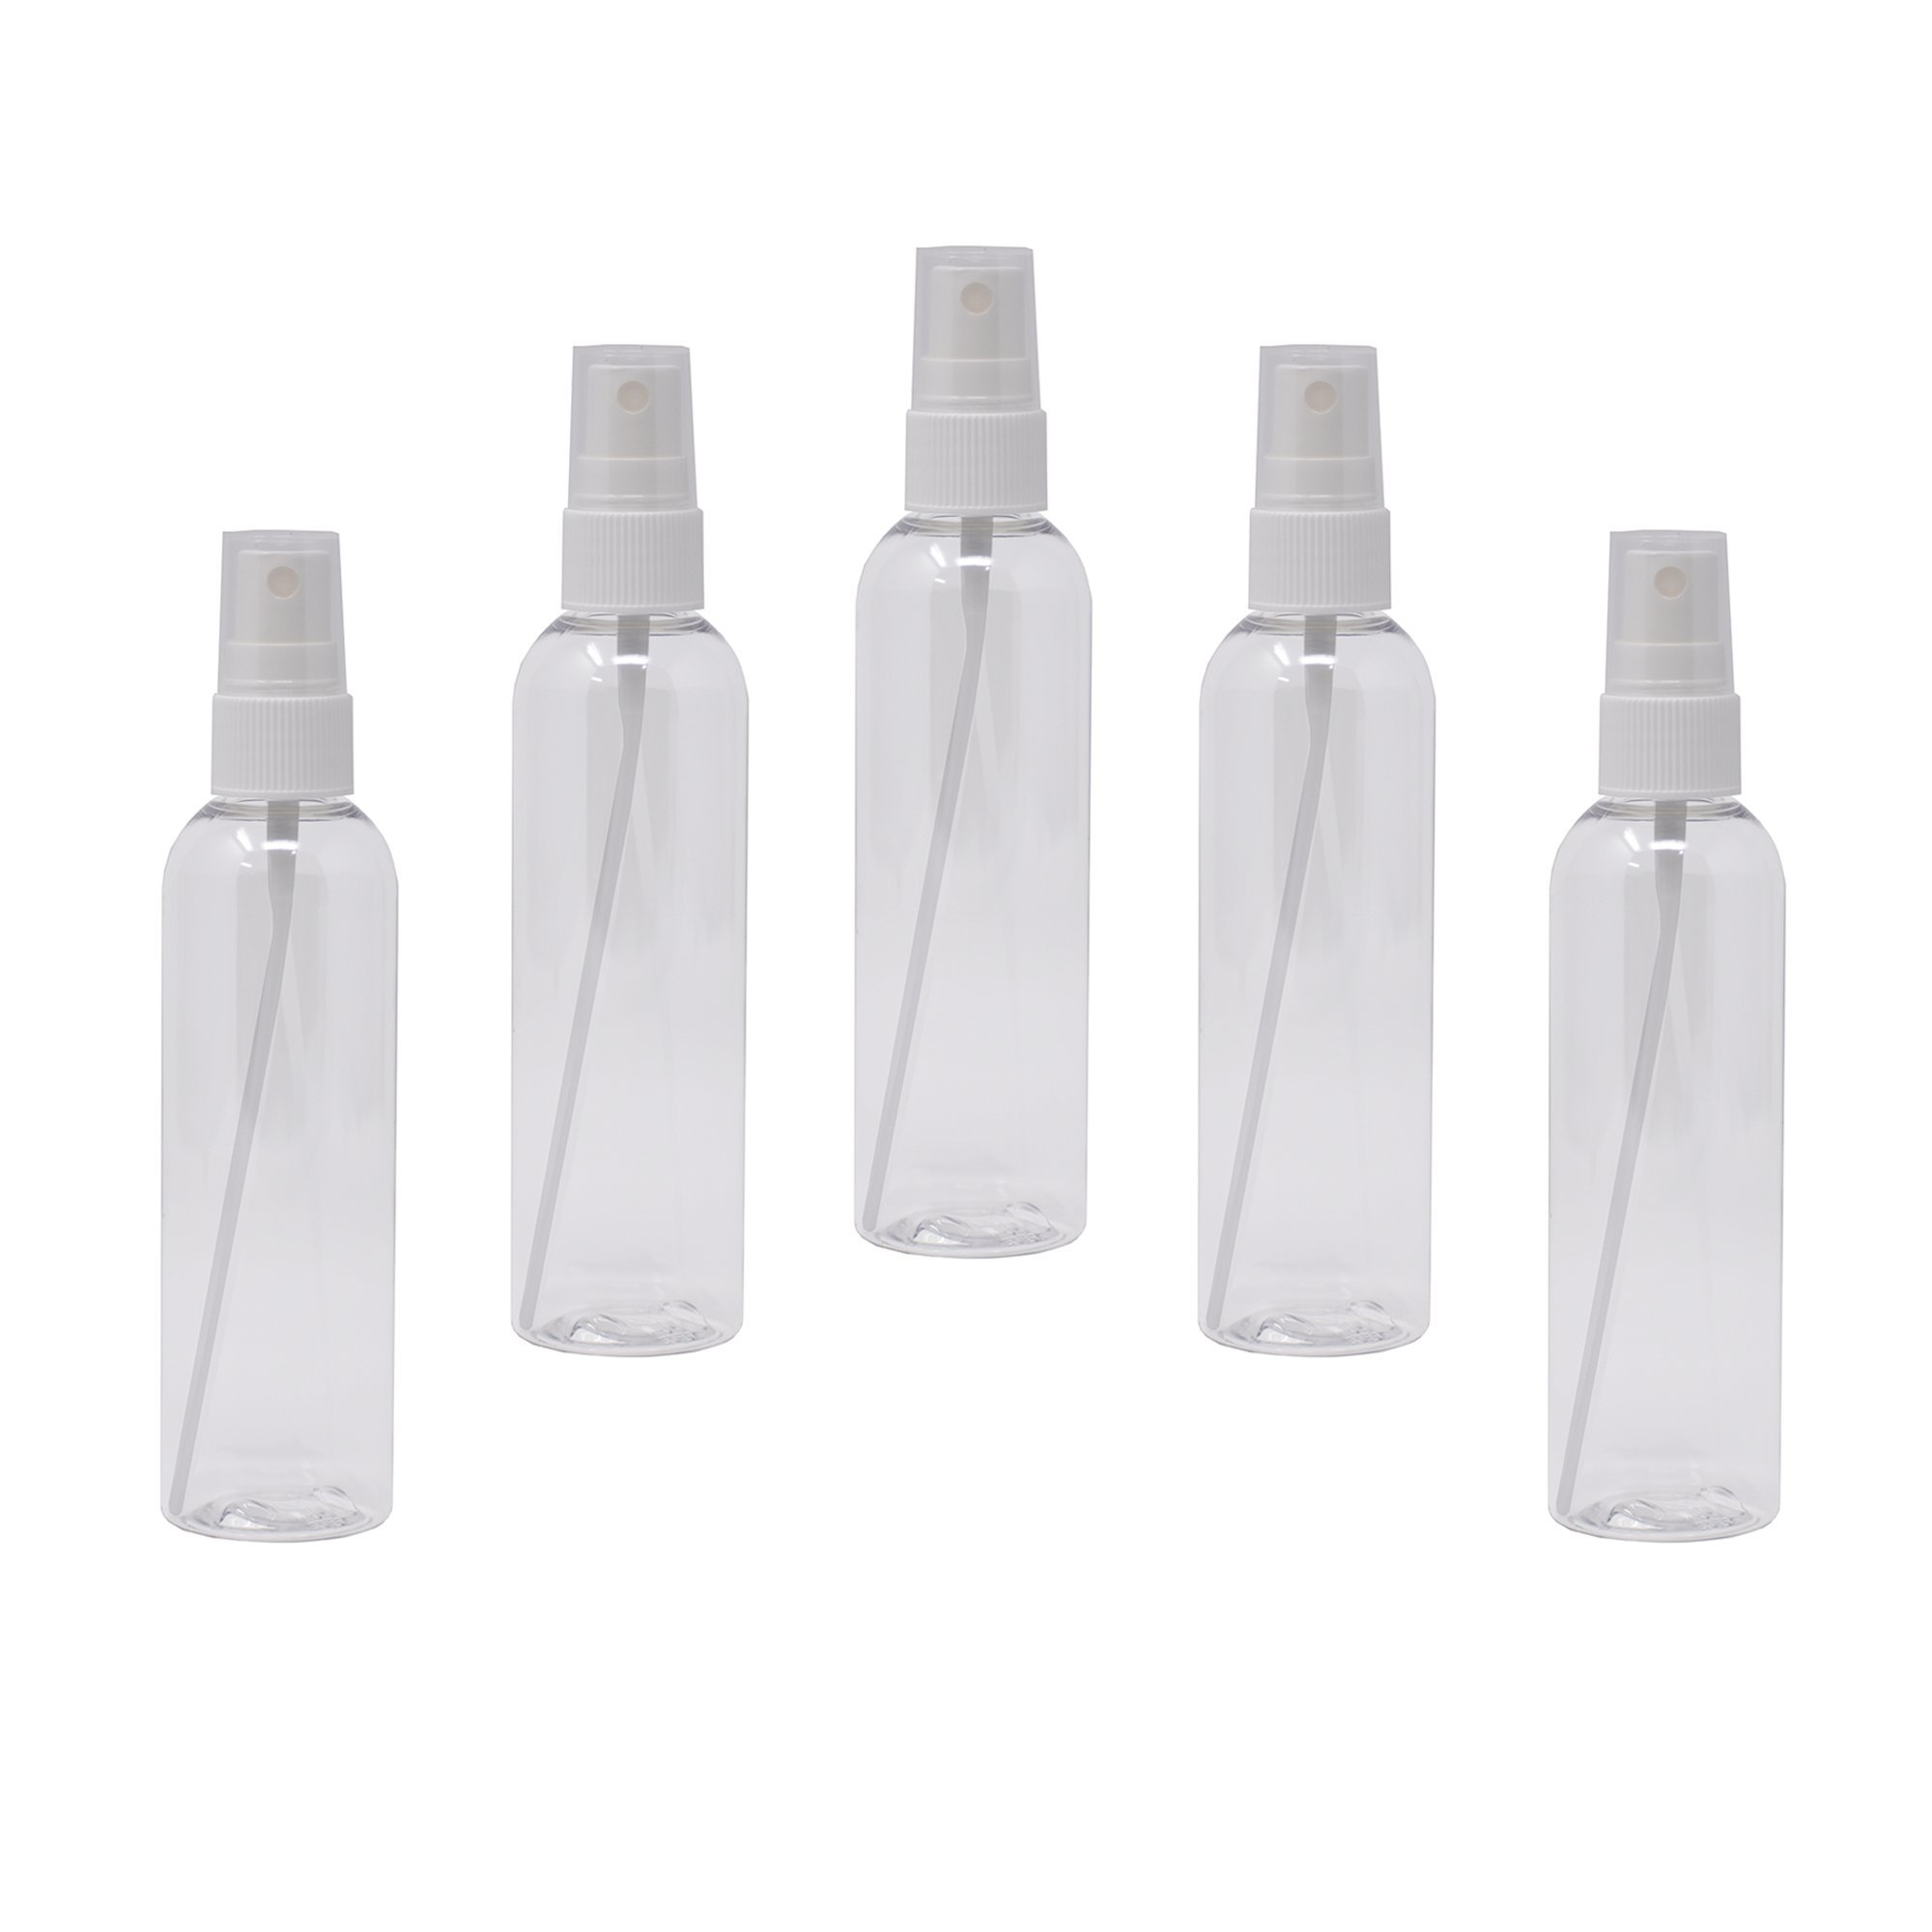 Plastic Spray Bottles Empty 4 oz with Fine Mist Sprayers PET BPA Free Materials Great for Essential Oil Sprays (5 Pack, Clear)